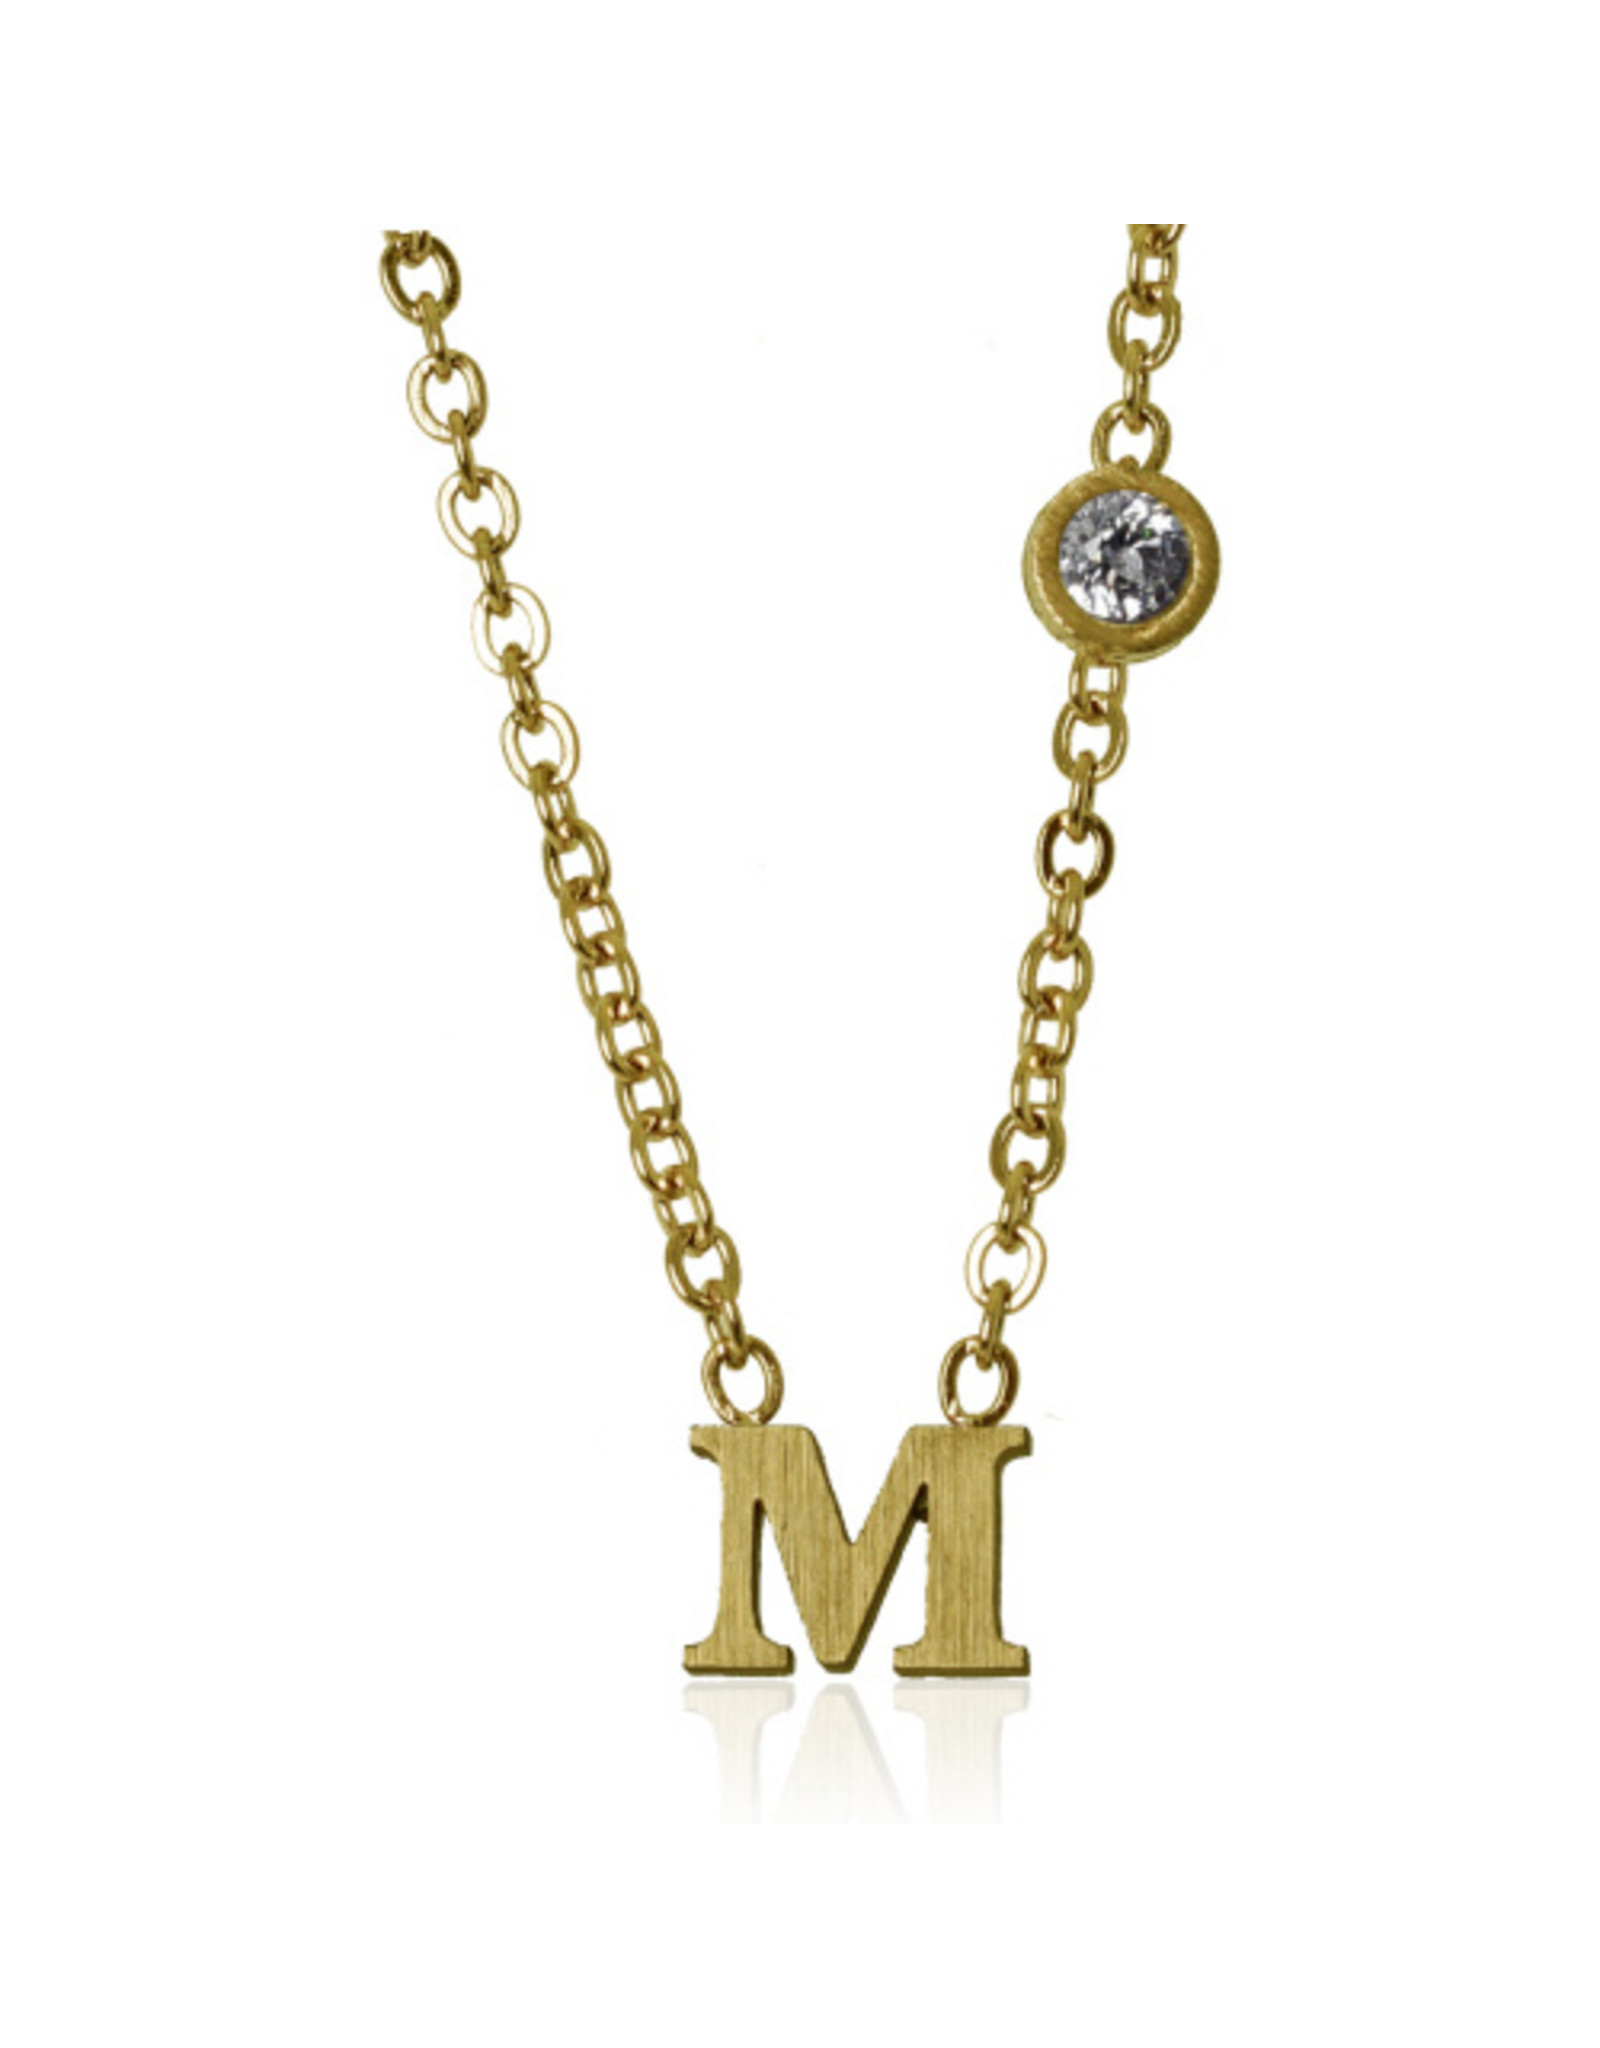 jj + rr   Letter Necklace A to M -